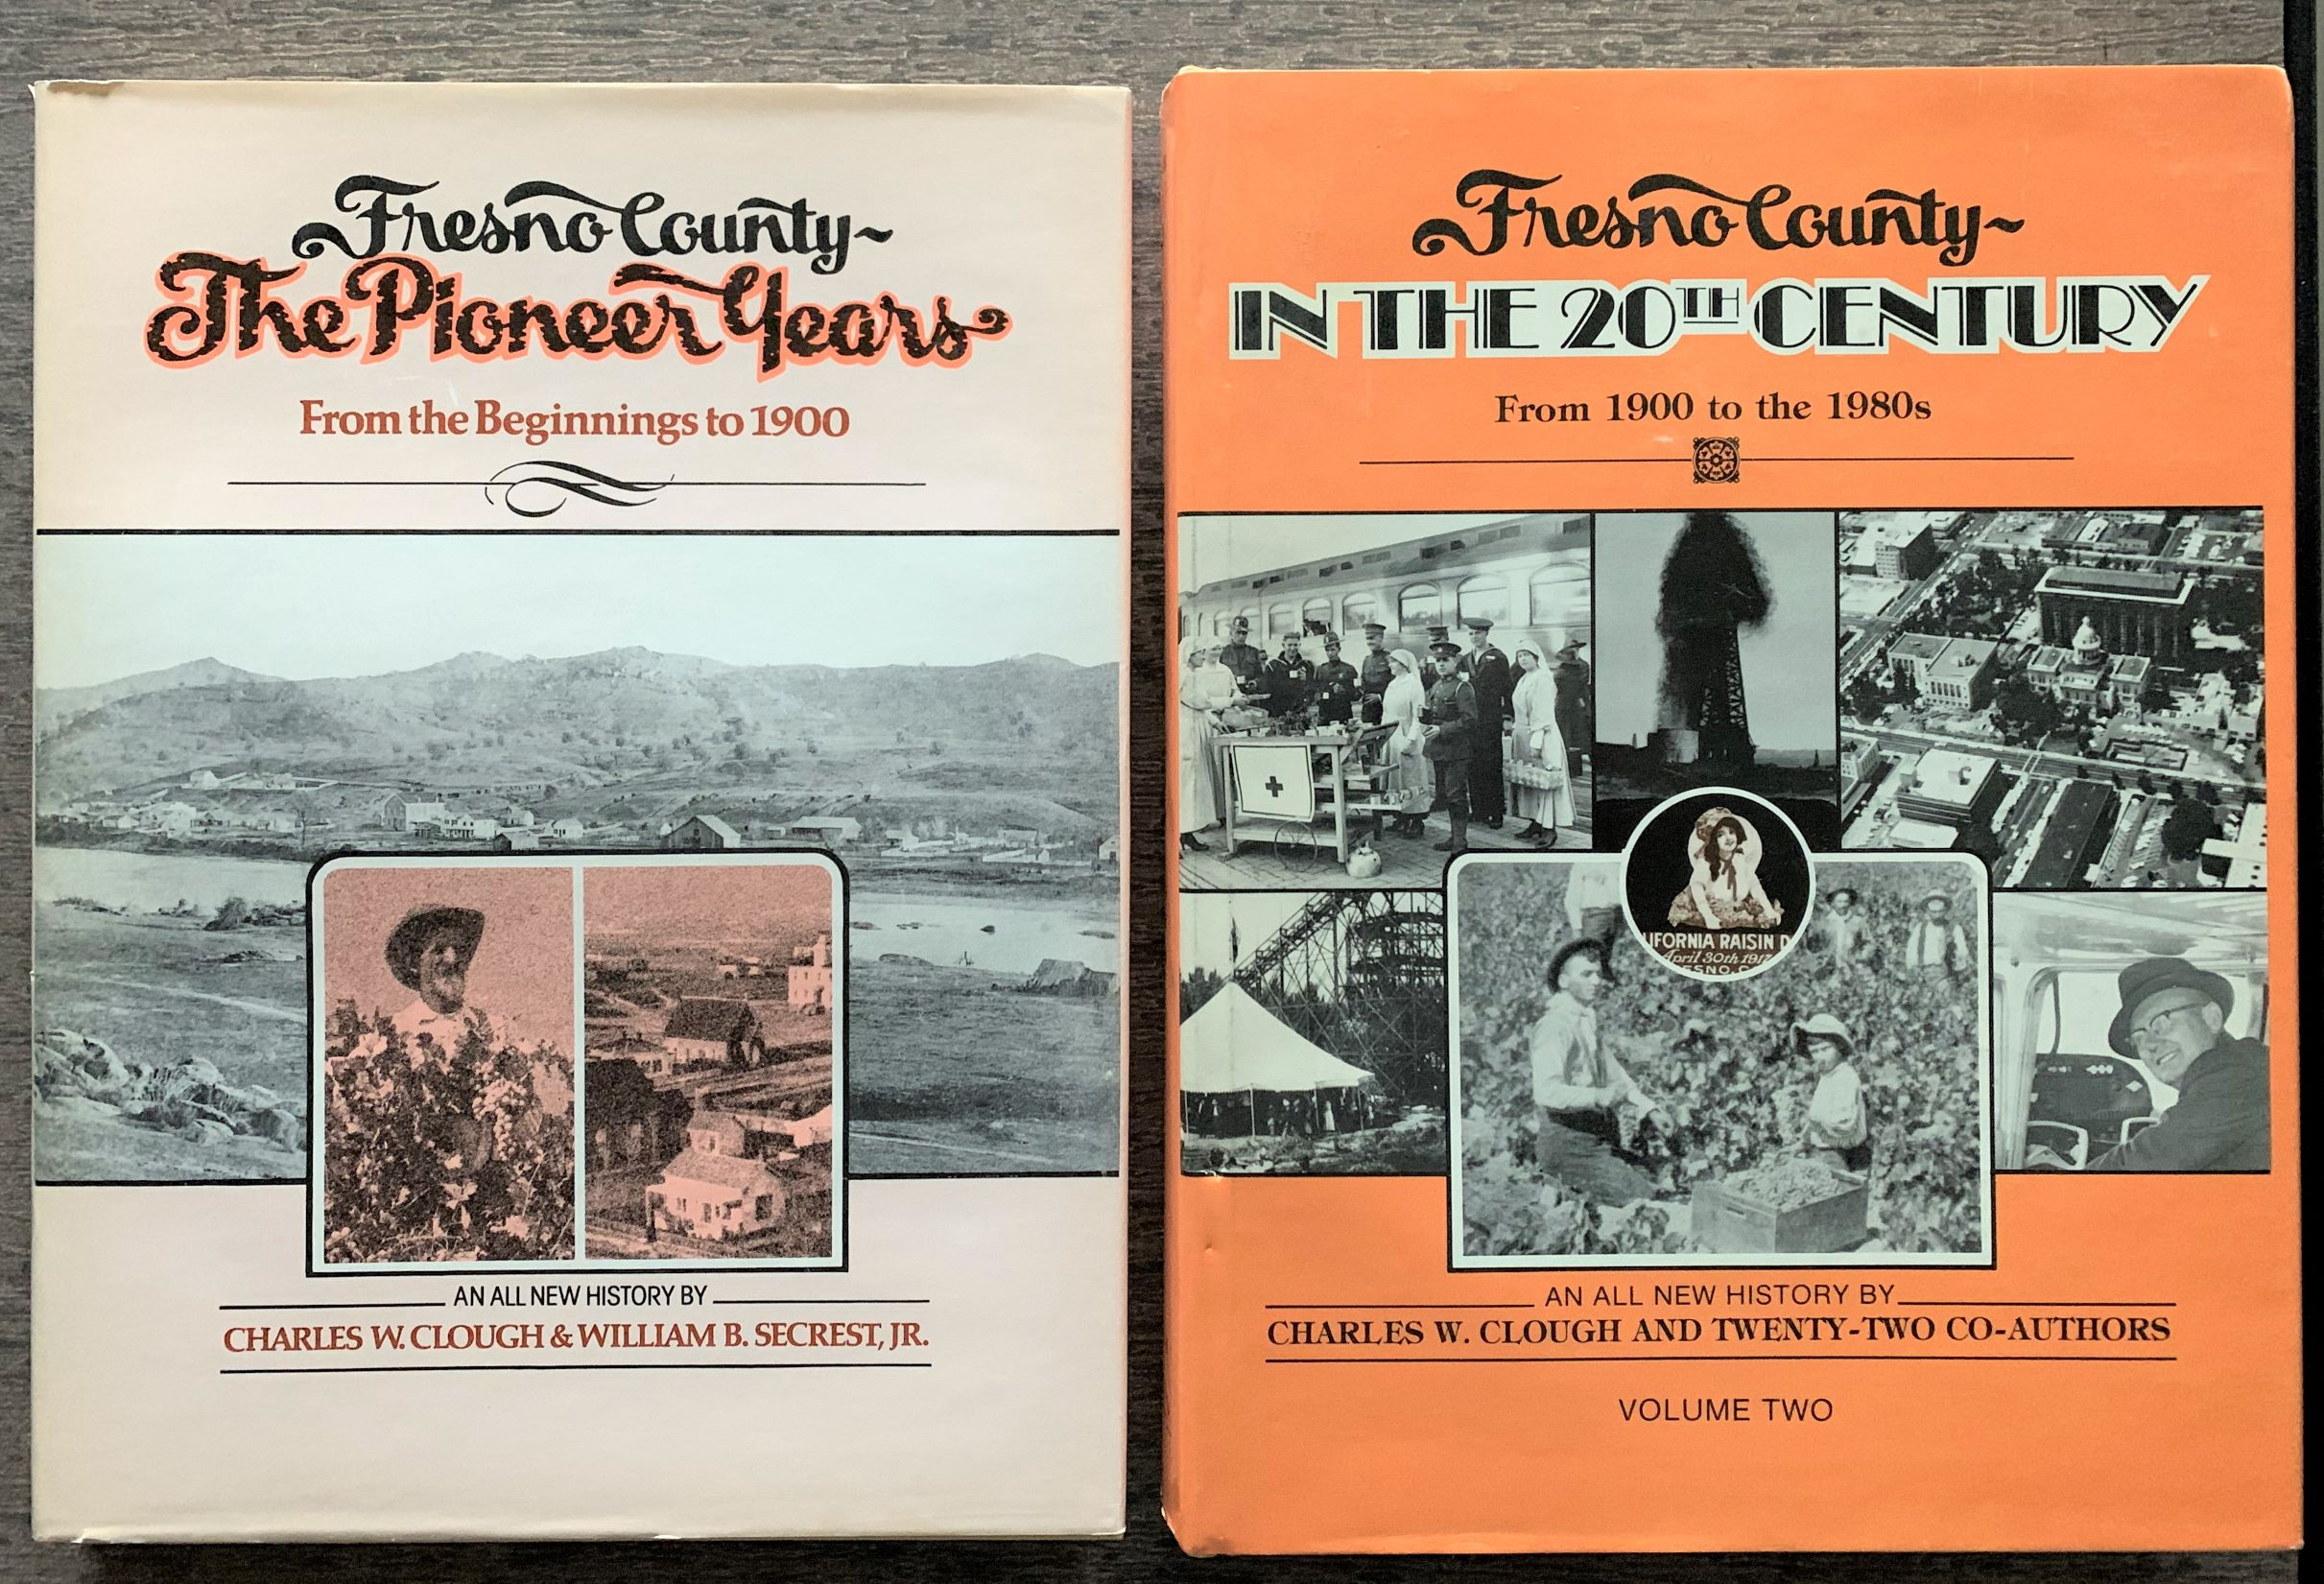 Image for [2 Volumes] 1.  Fresno County - The Pioneer Years, From the Beginning to 1900 2. Fresno County, In the 20th Century, 1900 to the 1980's.